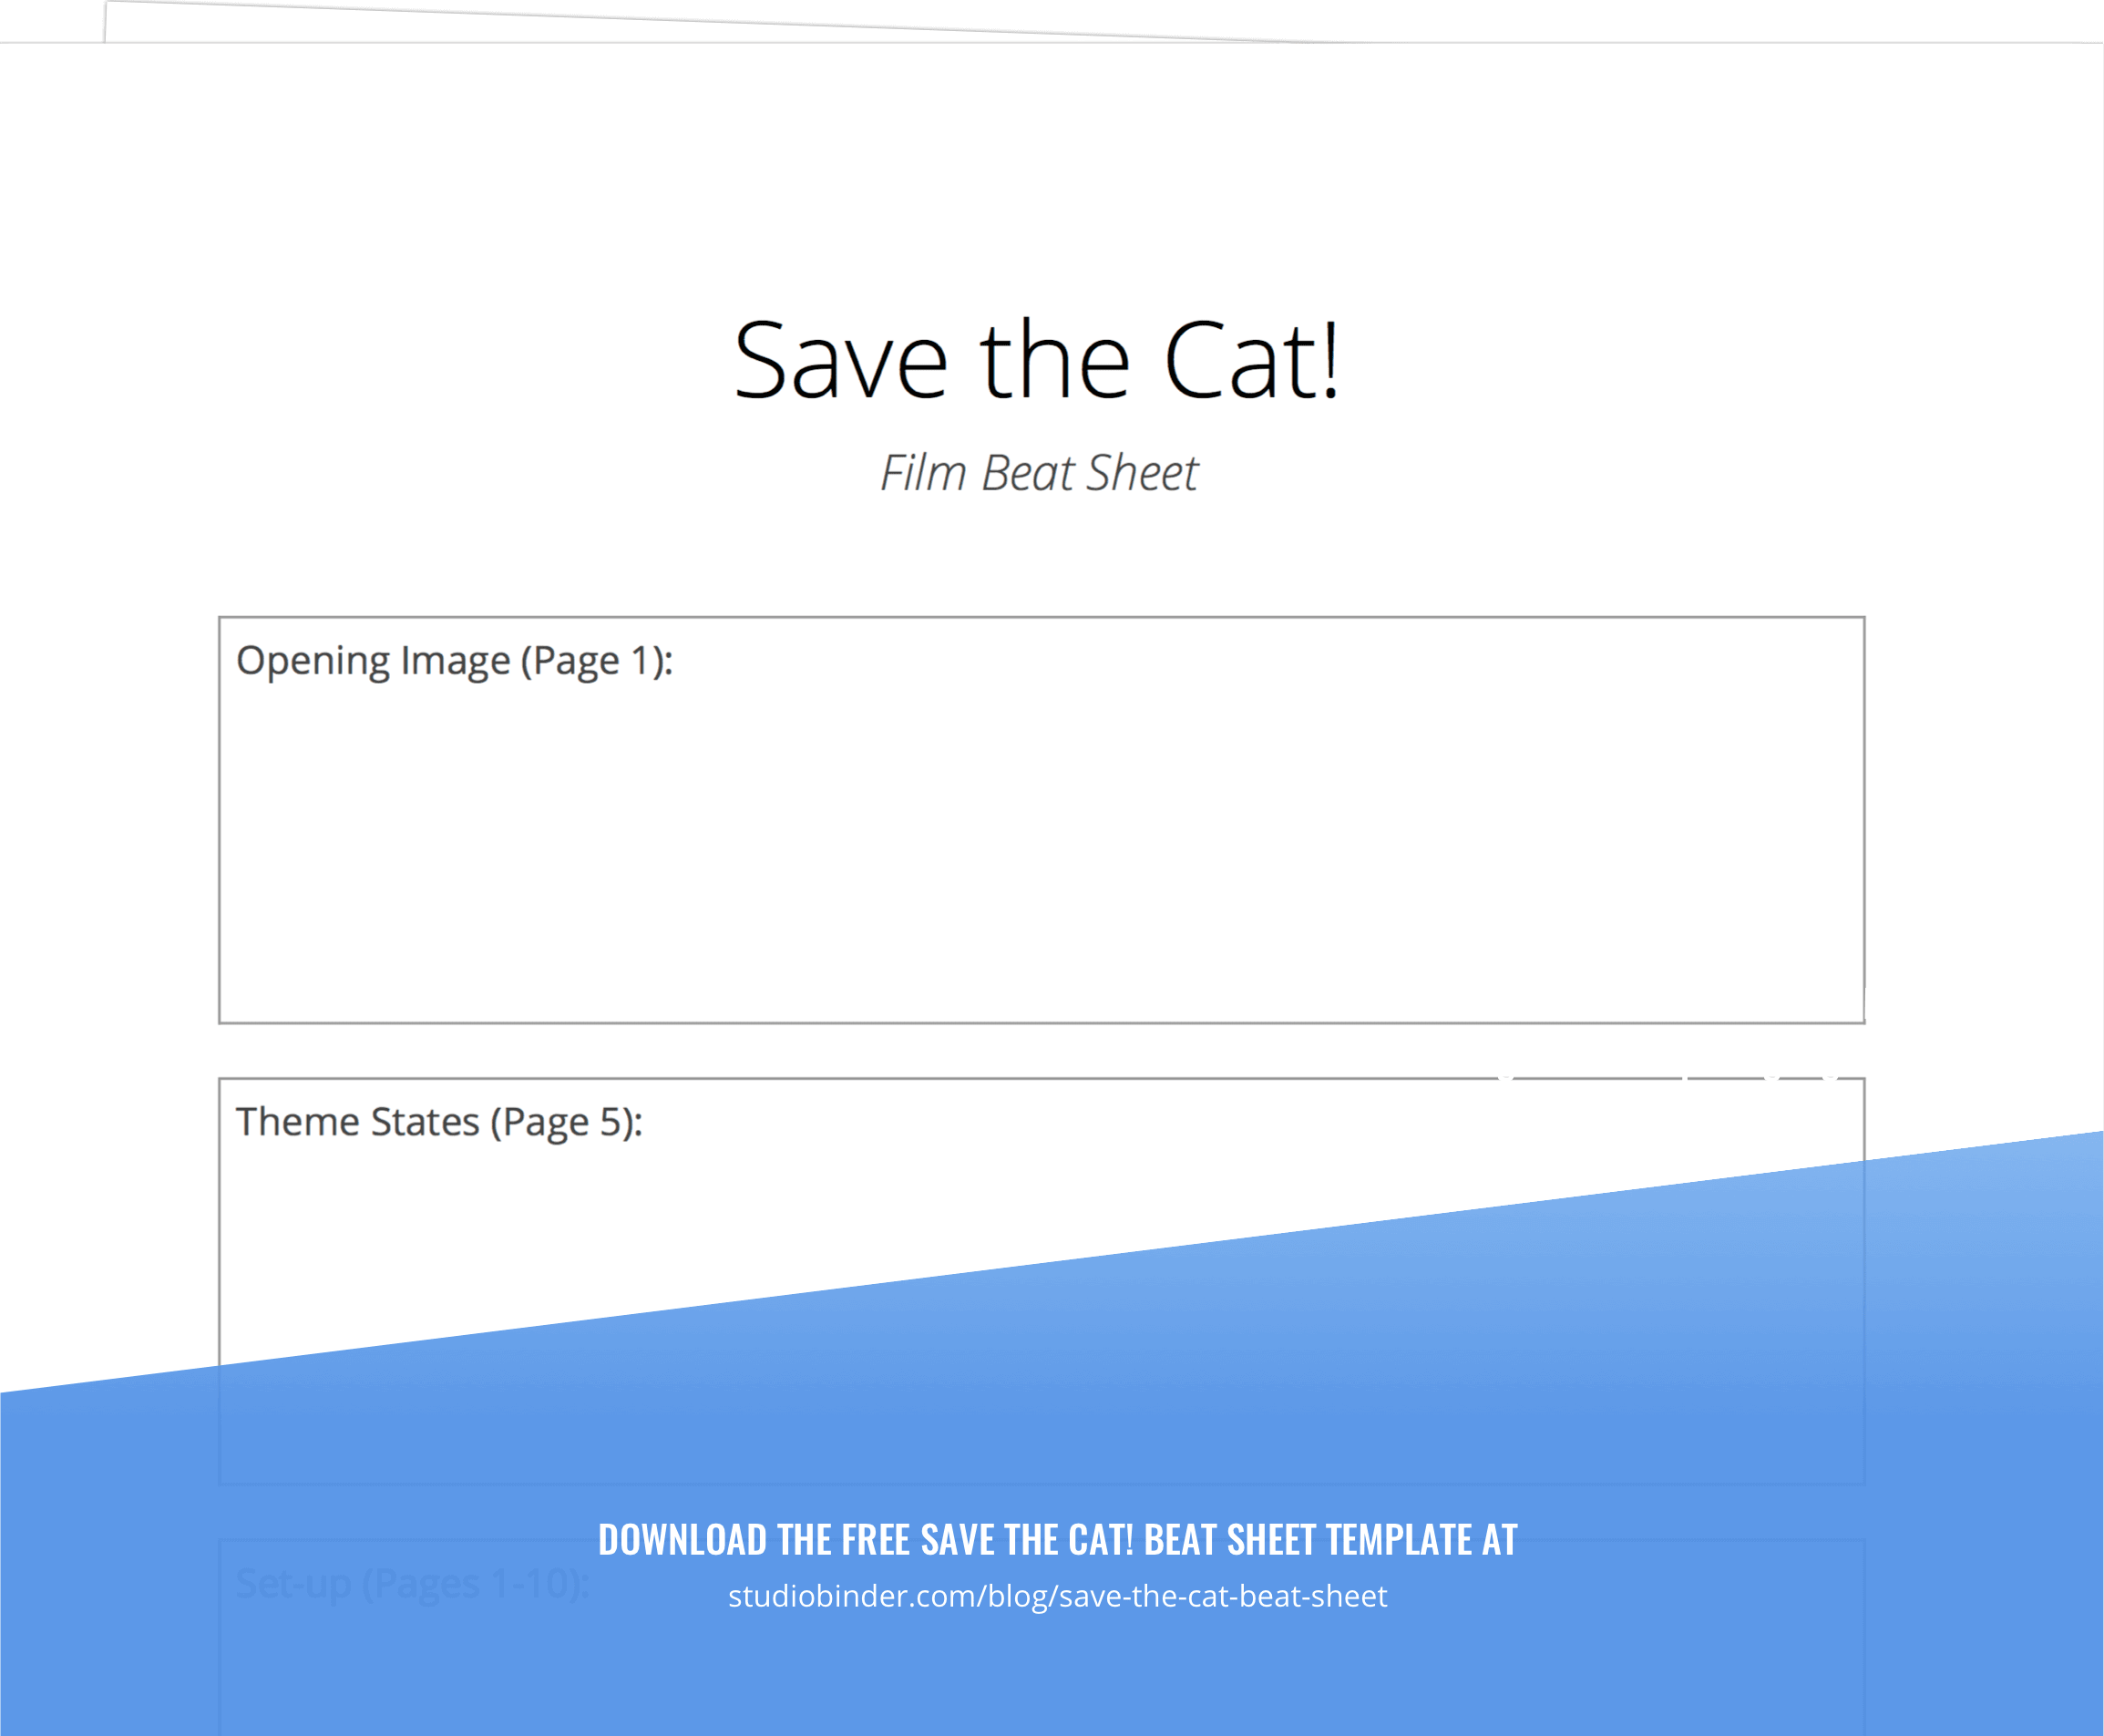 Save the Cat Beat Sheet Tempalte - StudioBinder - Exit intent